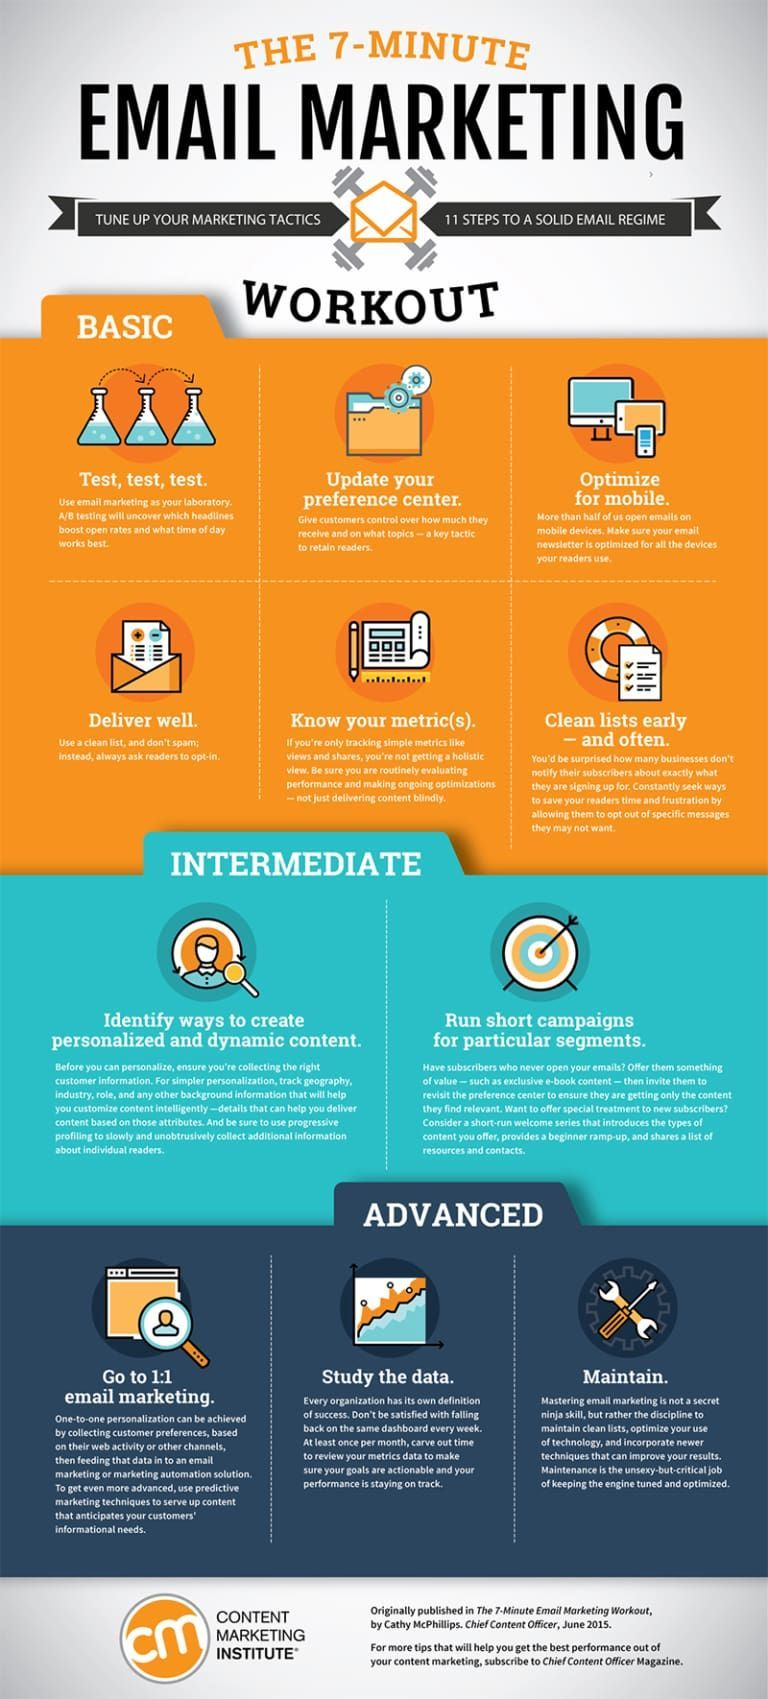 11 Steps To Improve Your Email Marketing That Take Just 7 Minutes Infographic Social Medi Infographic Marketing Email Marketing Content Marketing Institute